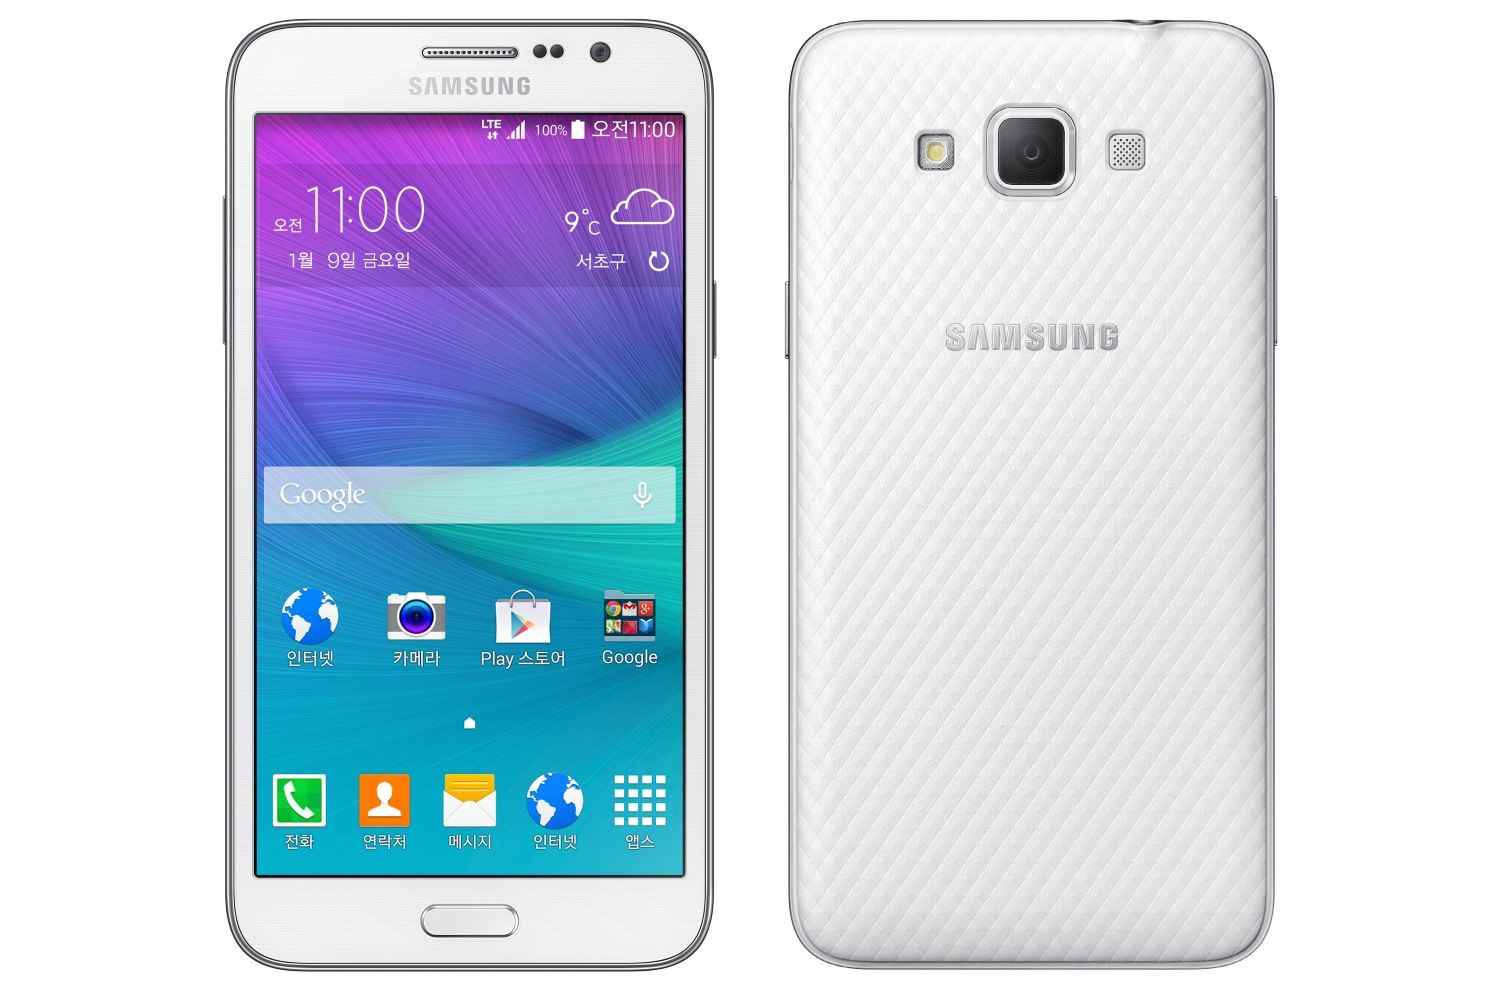 Samsung Galaxy Grand Max Is Company's Newest Mid-Ranger For The Indian Market